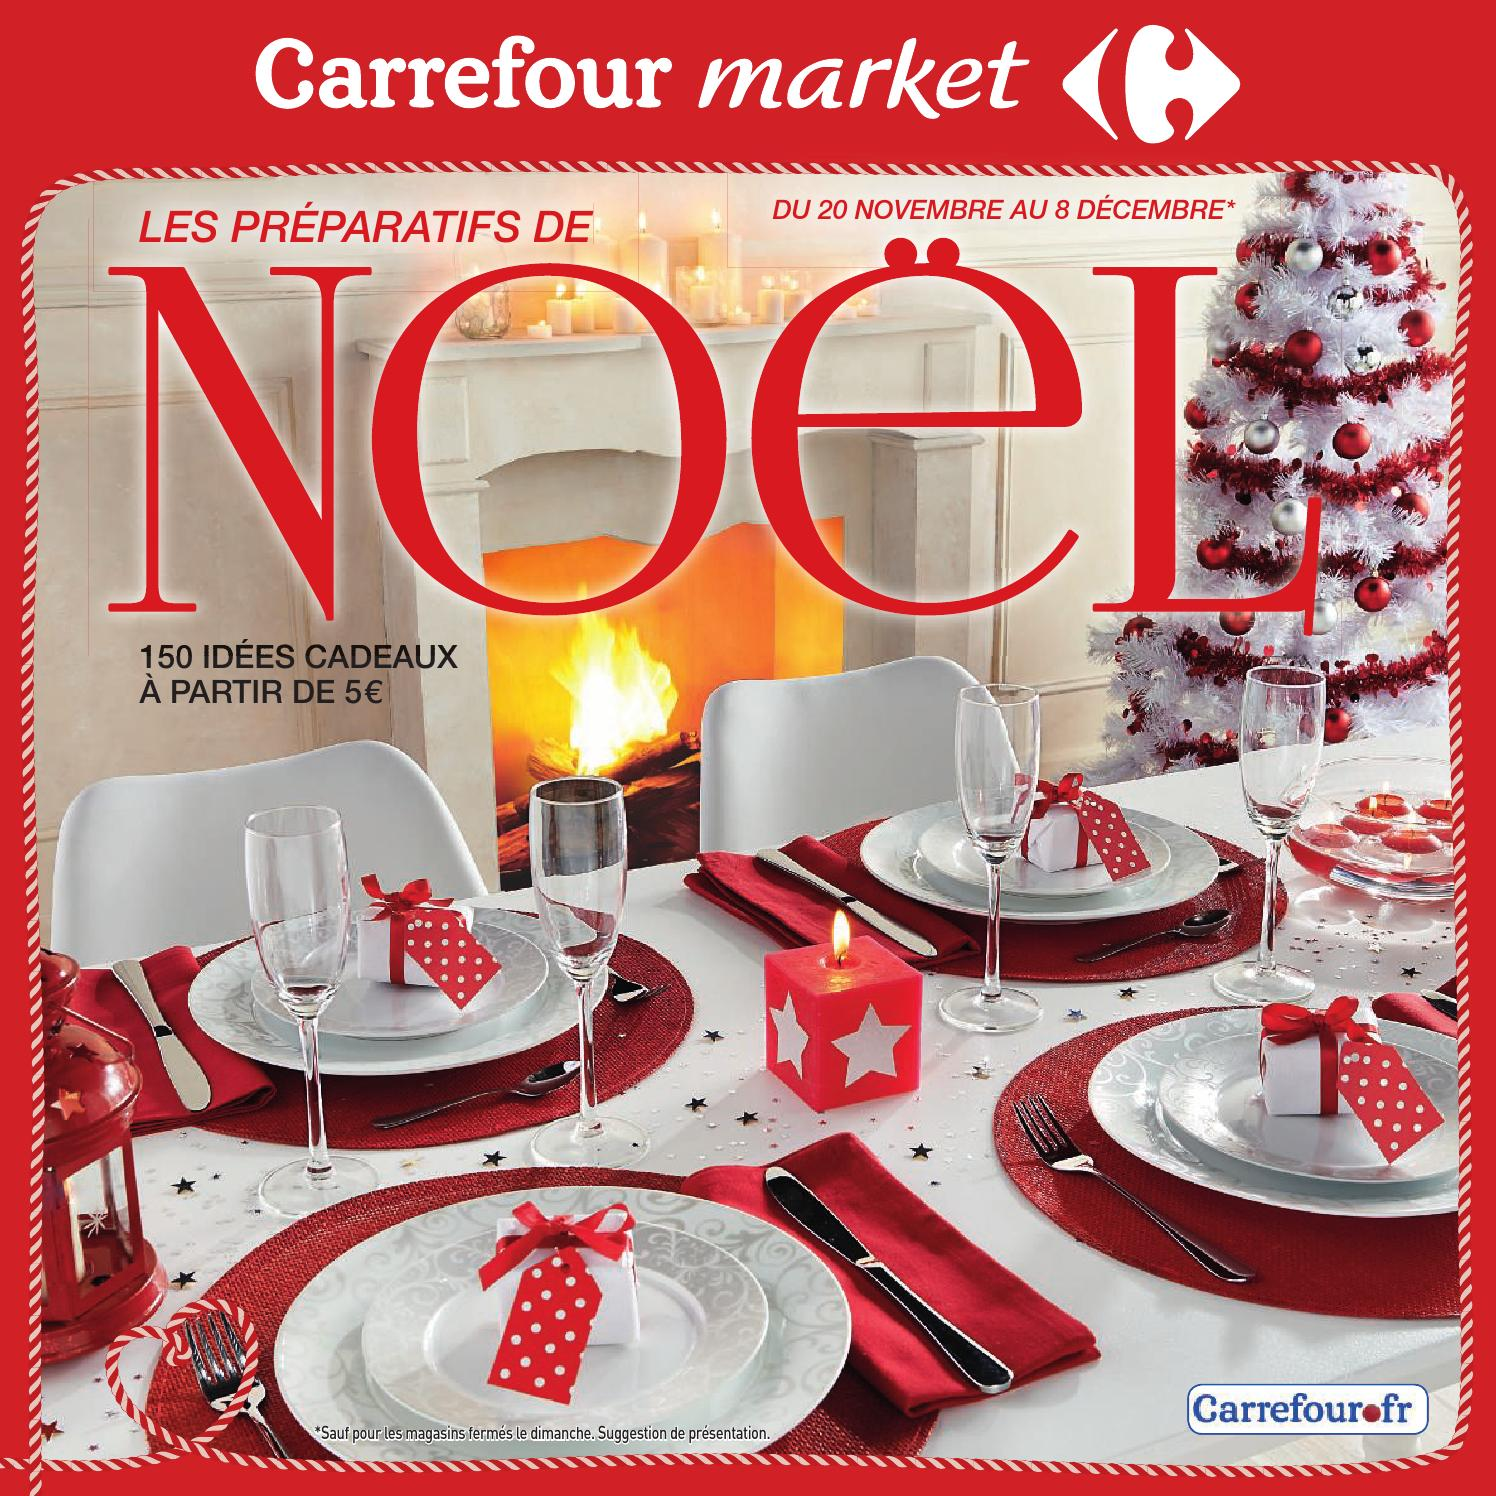 Catalogue Carrefour Market 2011 8122013 By Joe Monroe